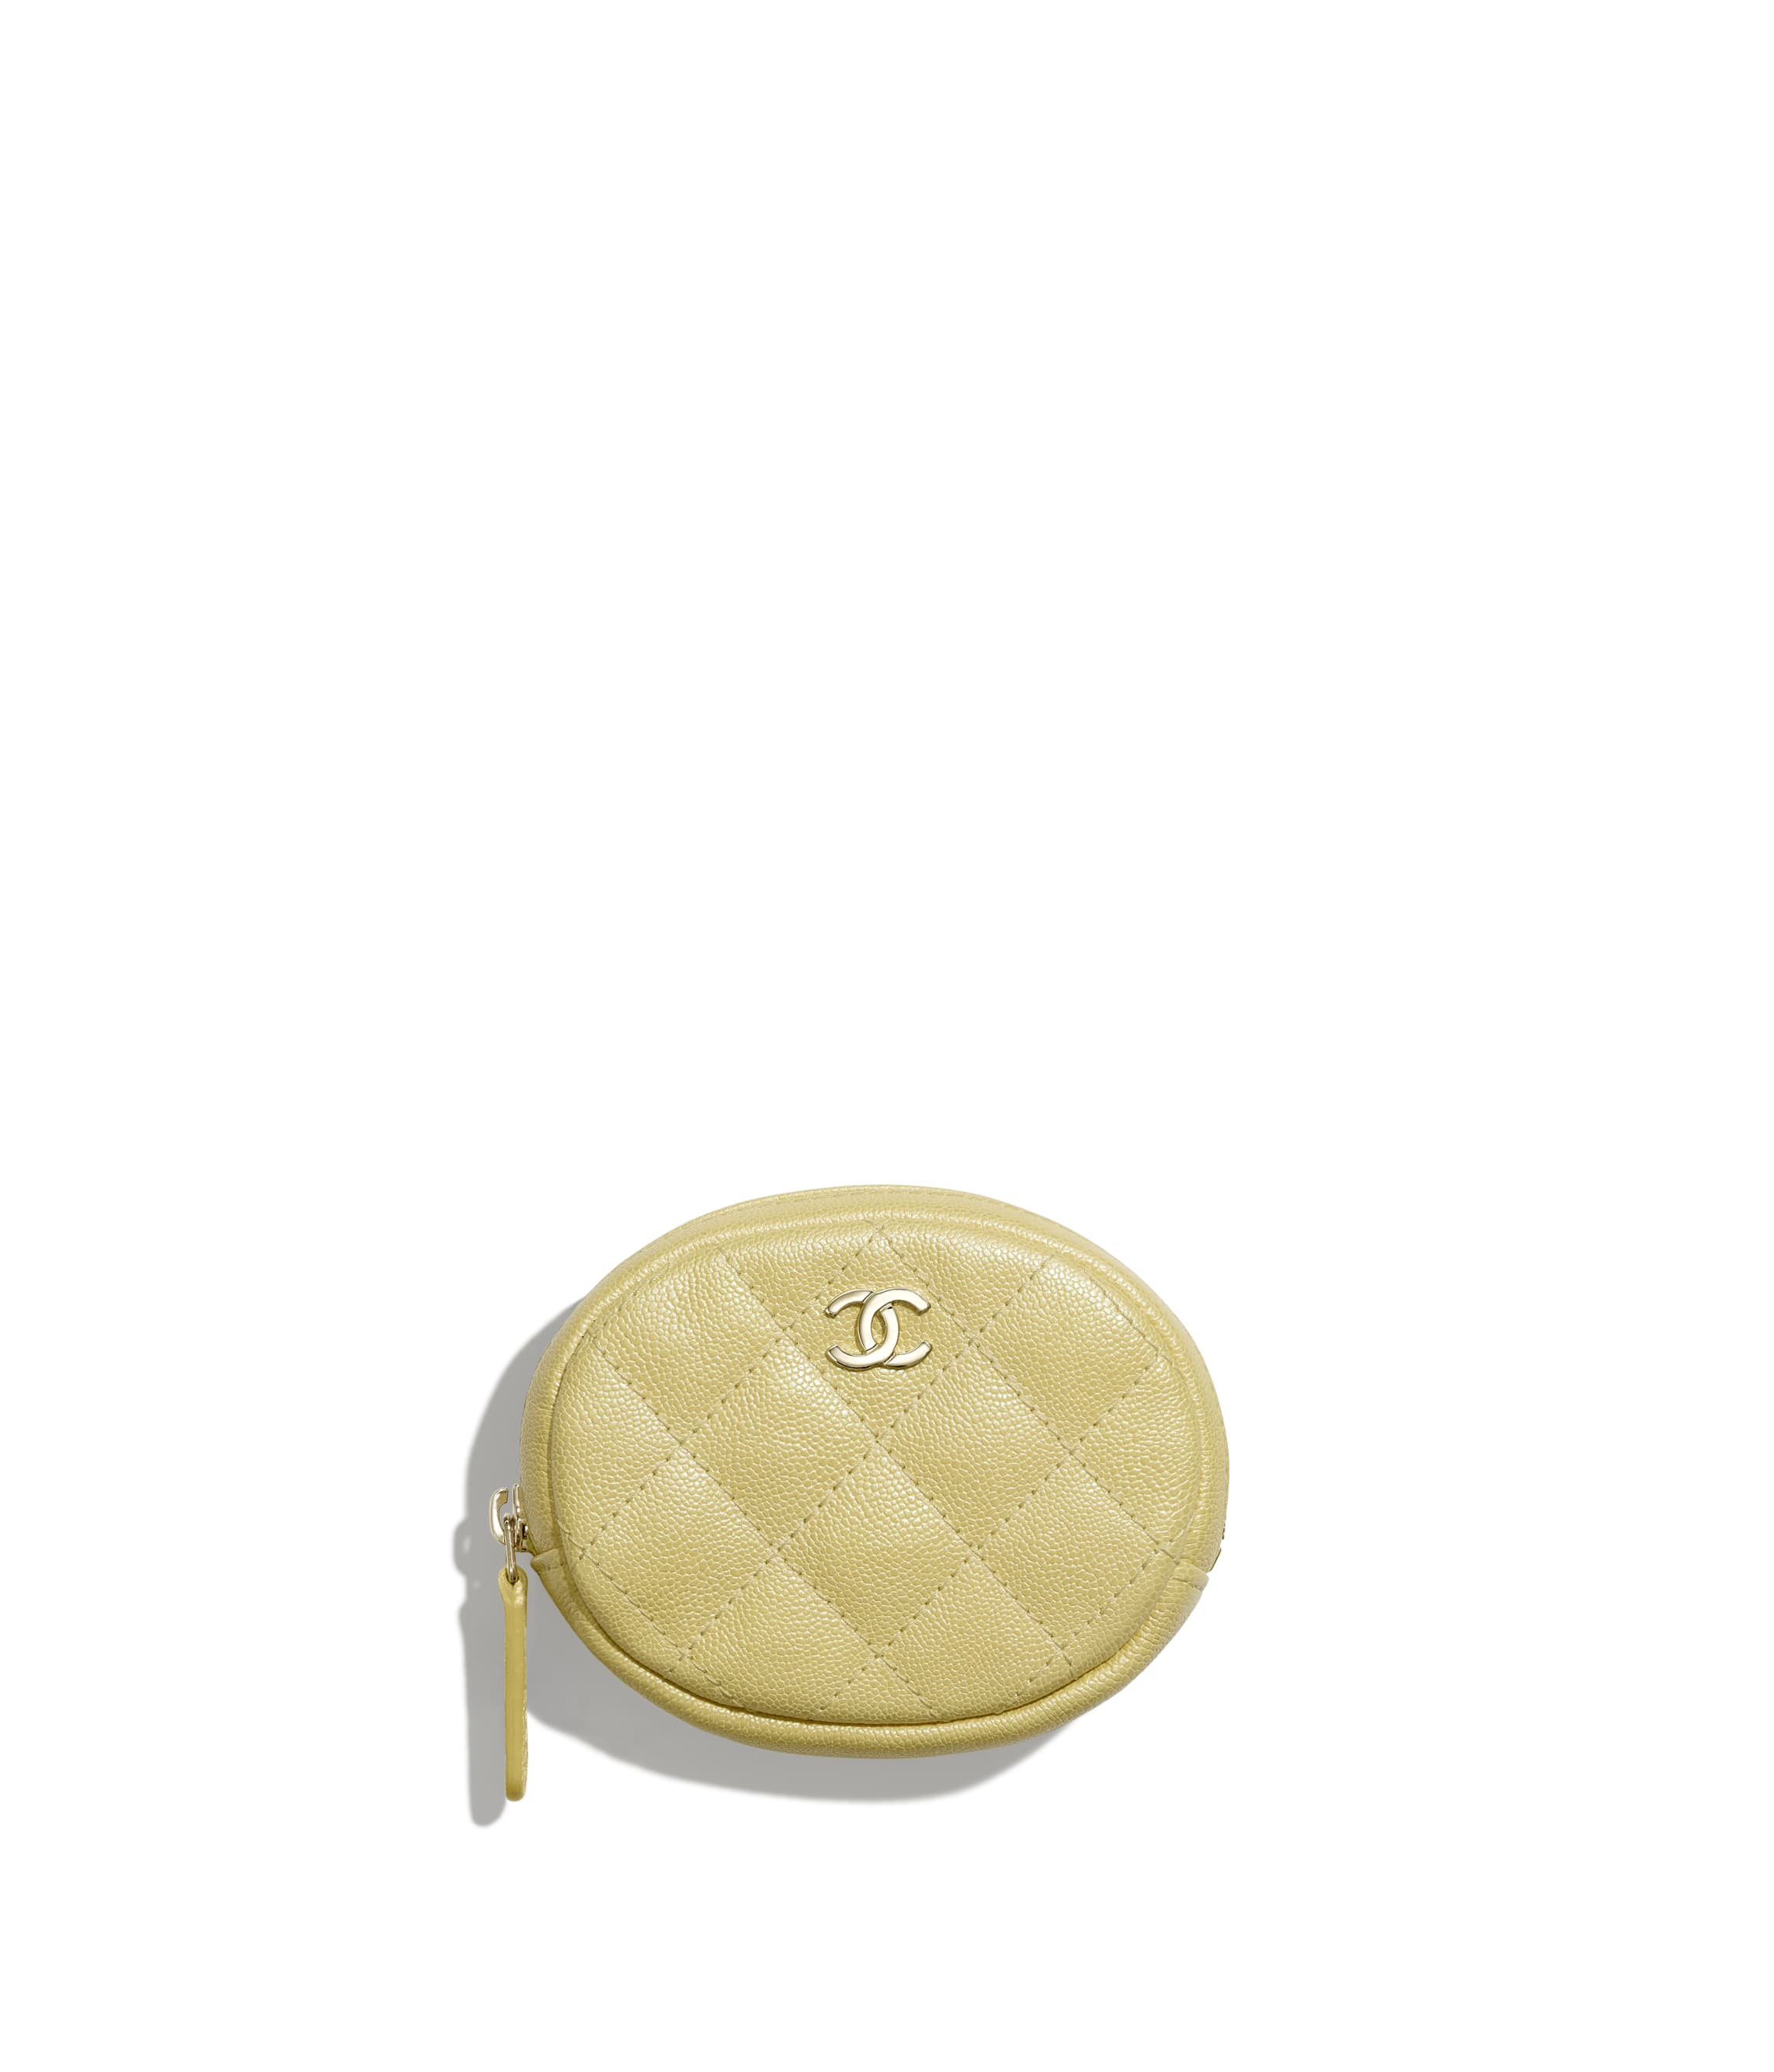 Small leather goods - CHANEL fc94062dcd3ac